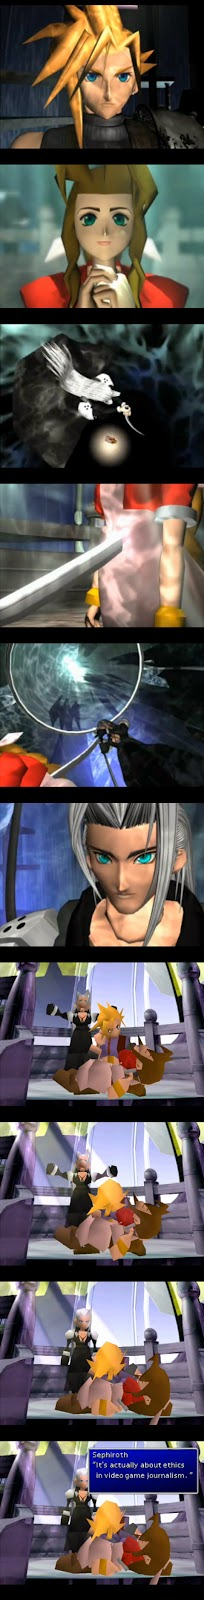 "A series of images of Sephiroth killing Aeris, and in the last one he says ""It's actually about ethics in video game journalism."""